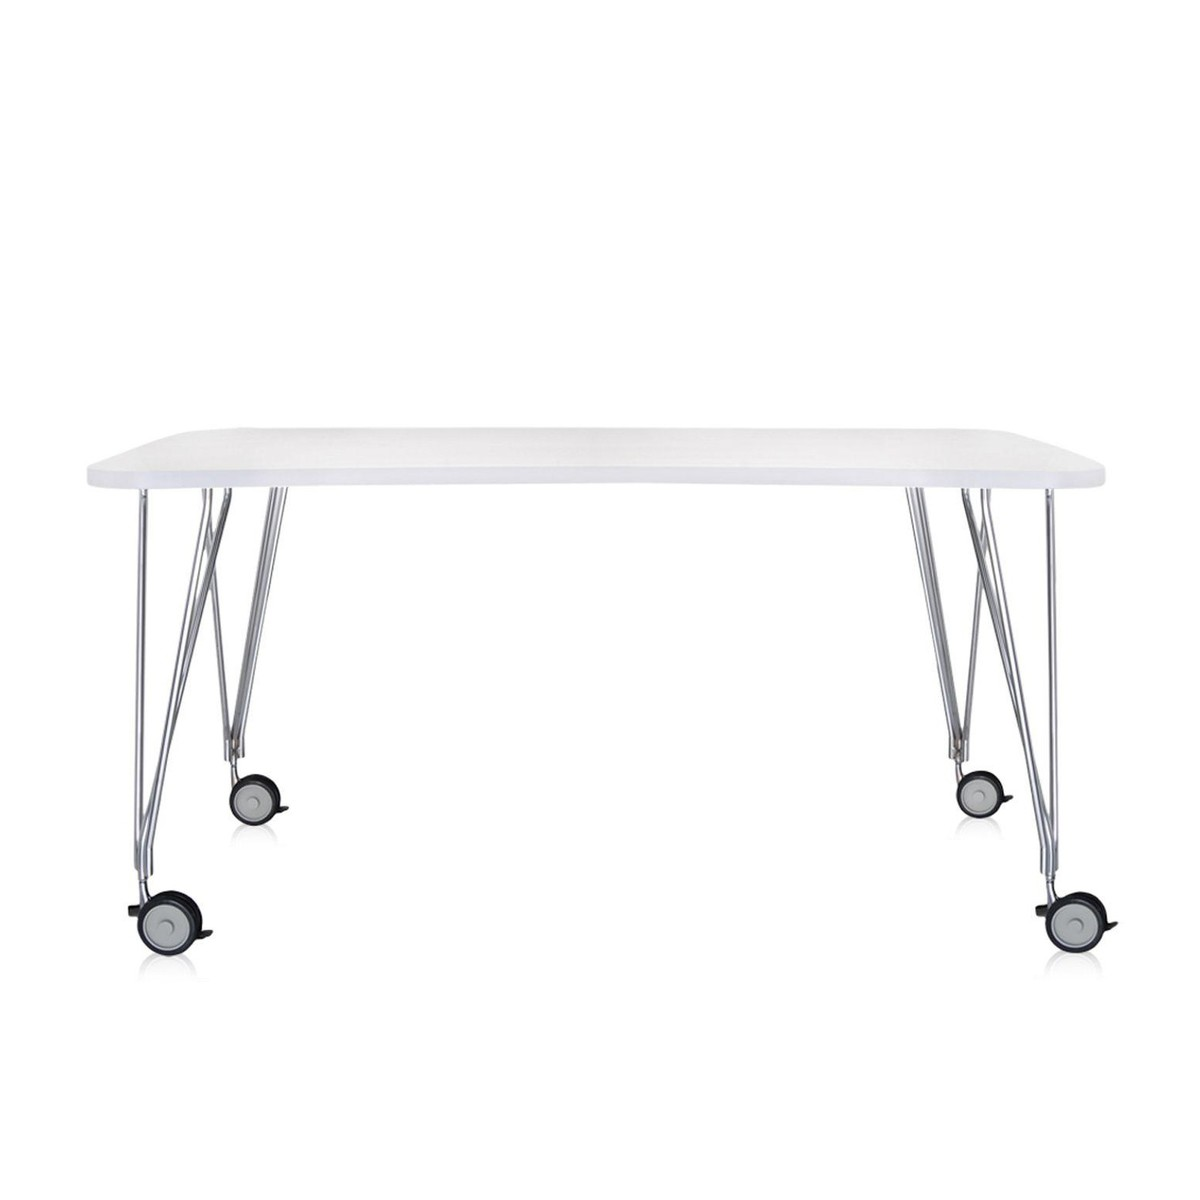 max table with wheels xcm  kartell  ambientedirectcom - kartell  max table with wheels xcm